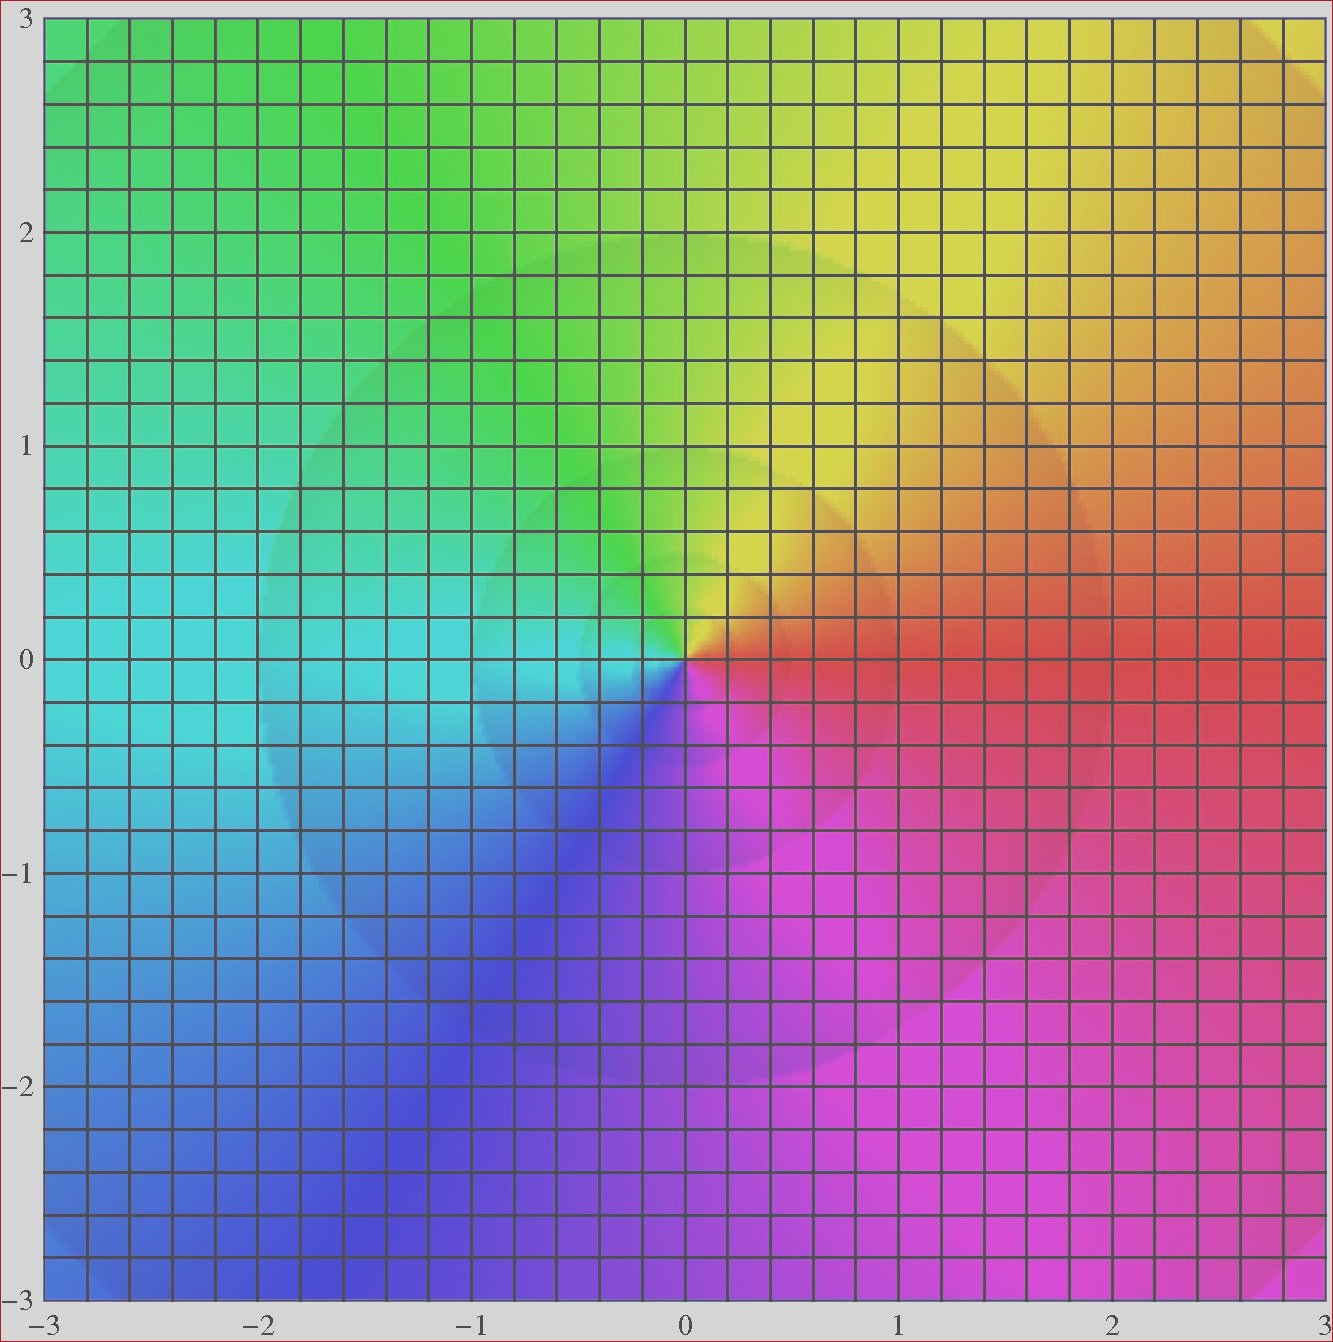 domain coloring for visualizing plex functions